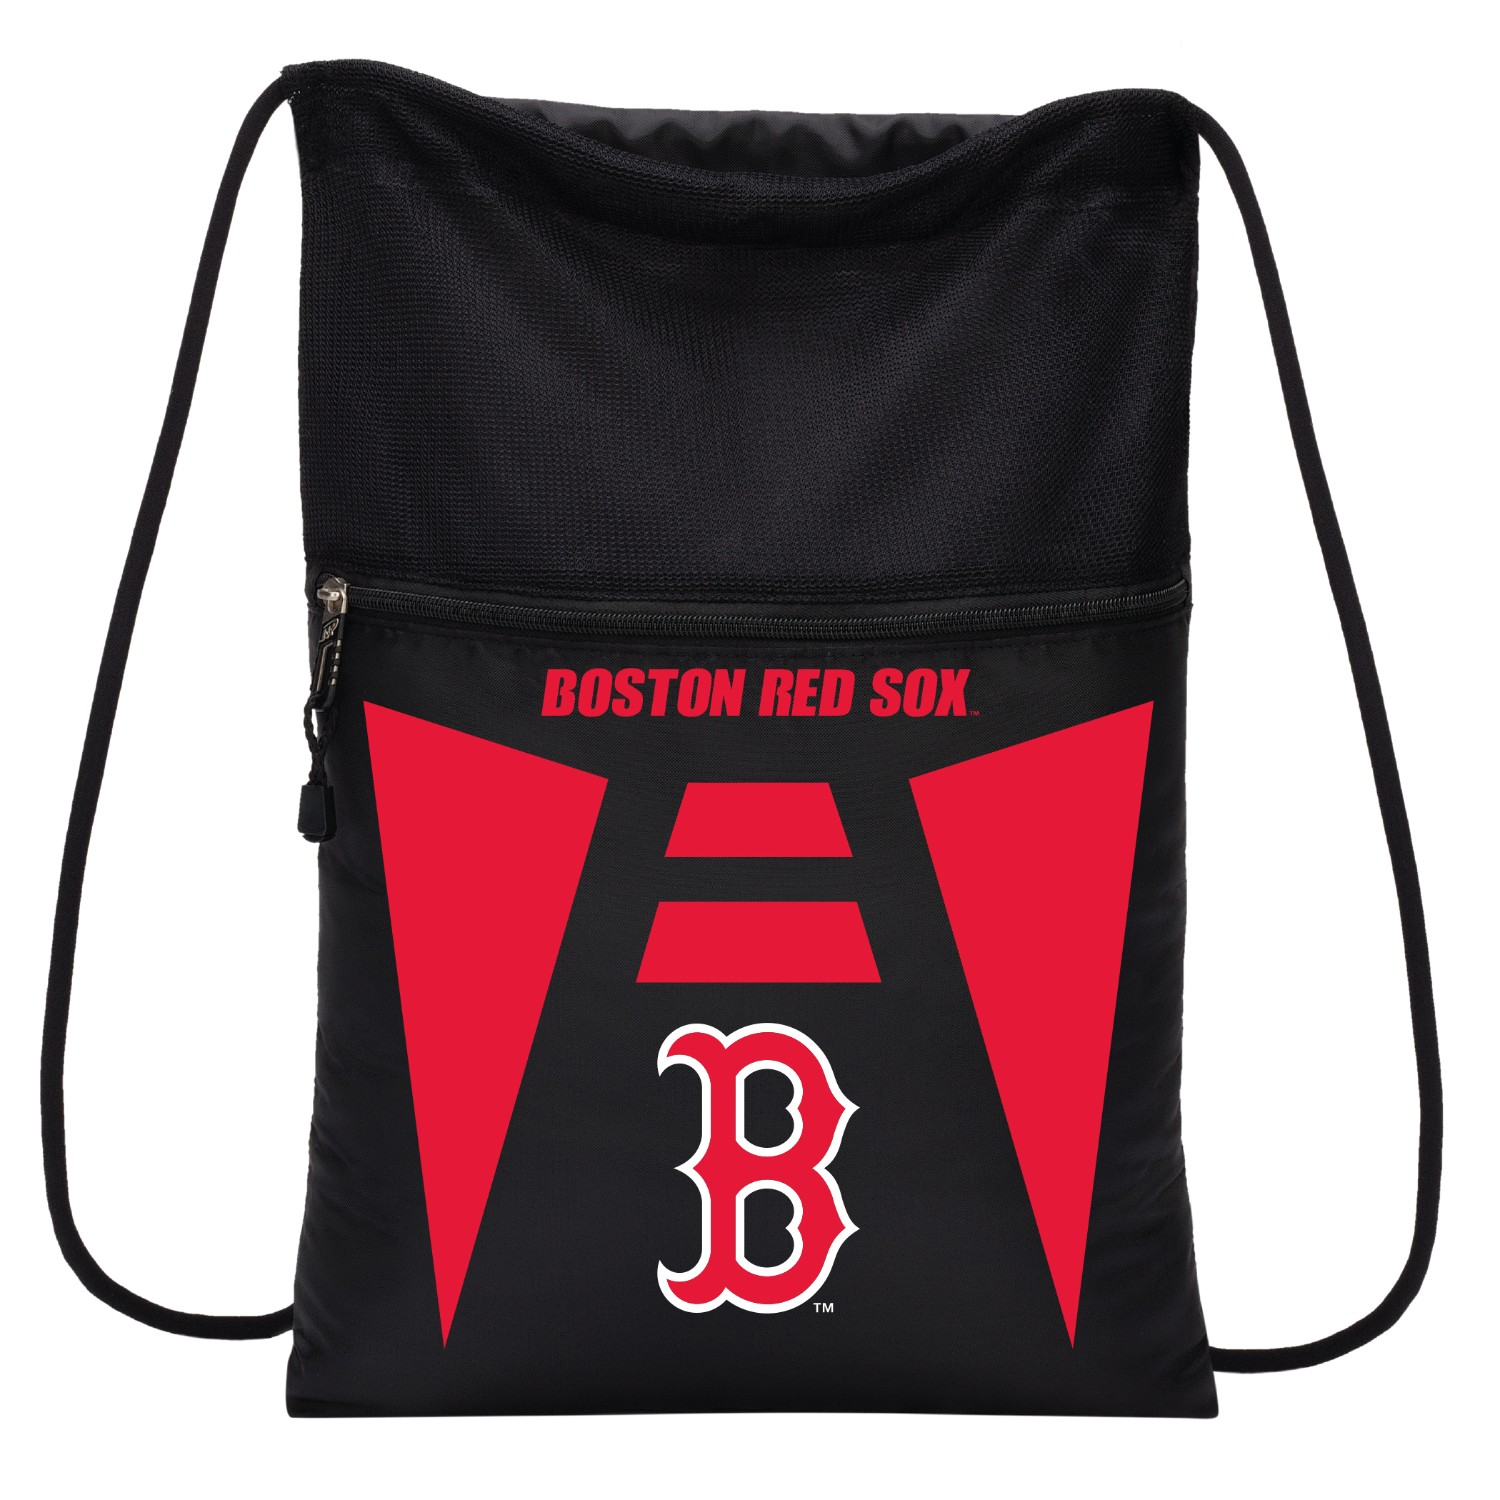 Boston Red Sox Team Tech Backsack